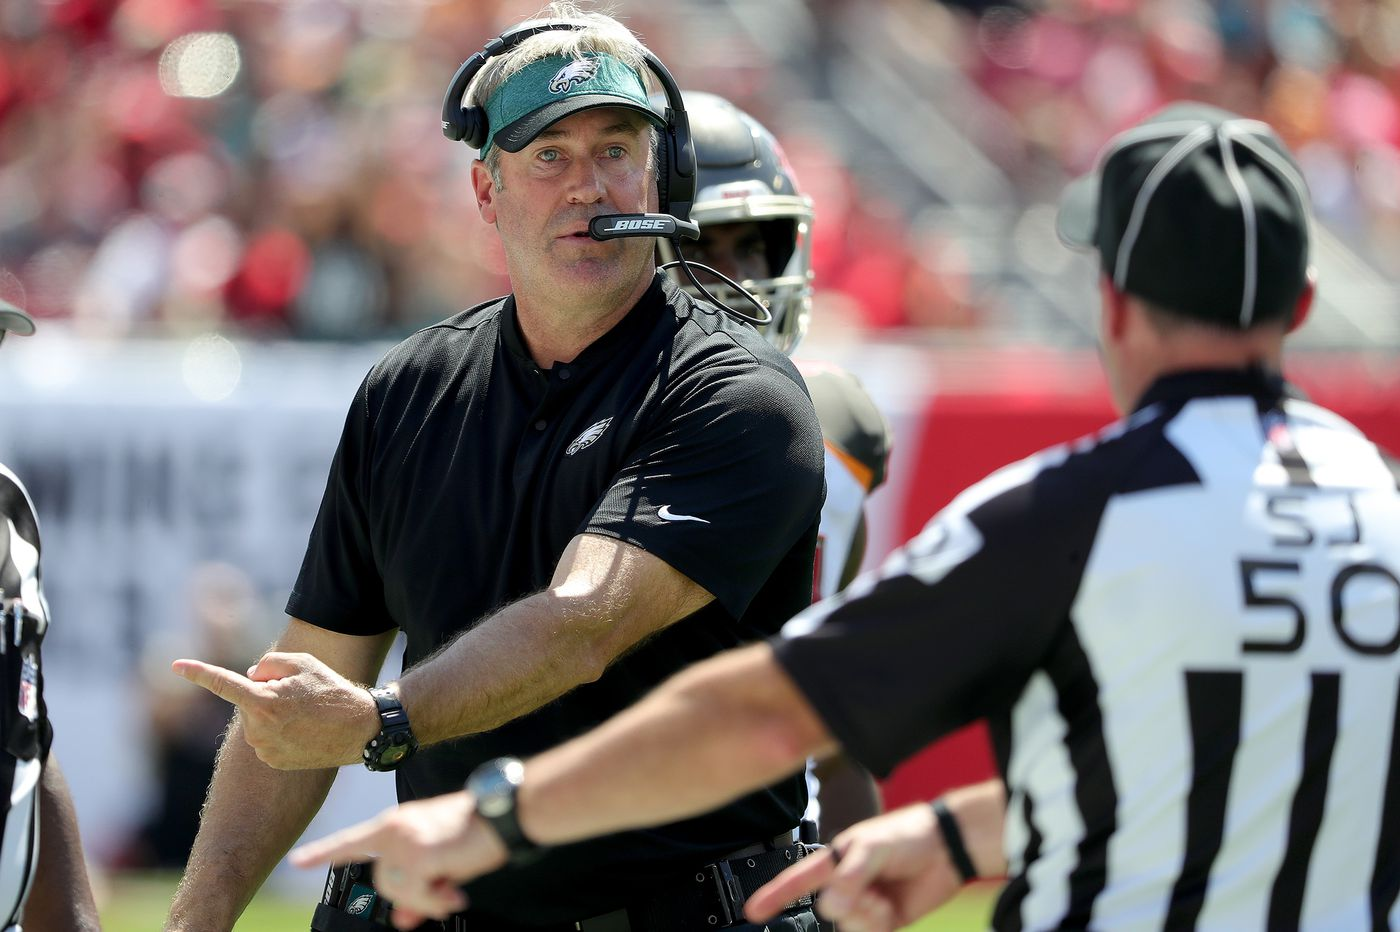 After Eagles lose to Bucs, Doug Pederson laments 'a lot of self-inflicted wounds'